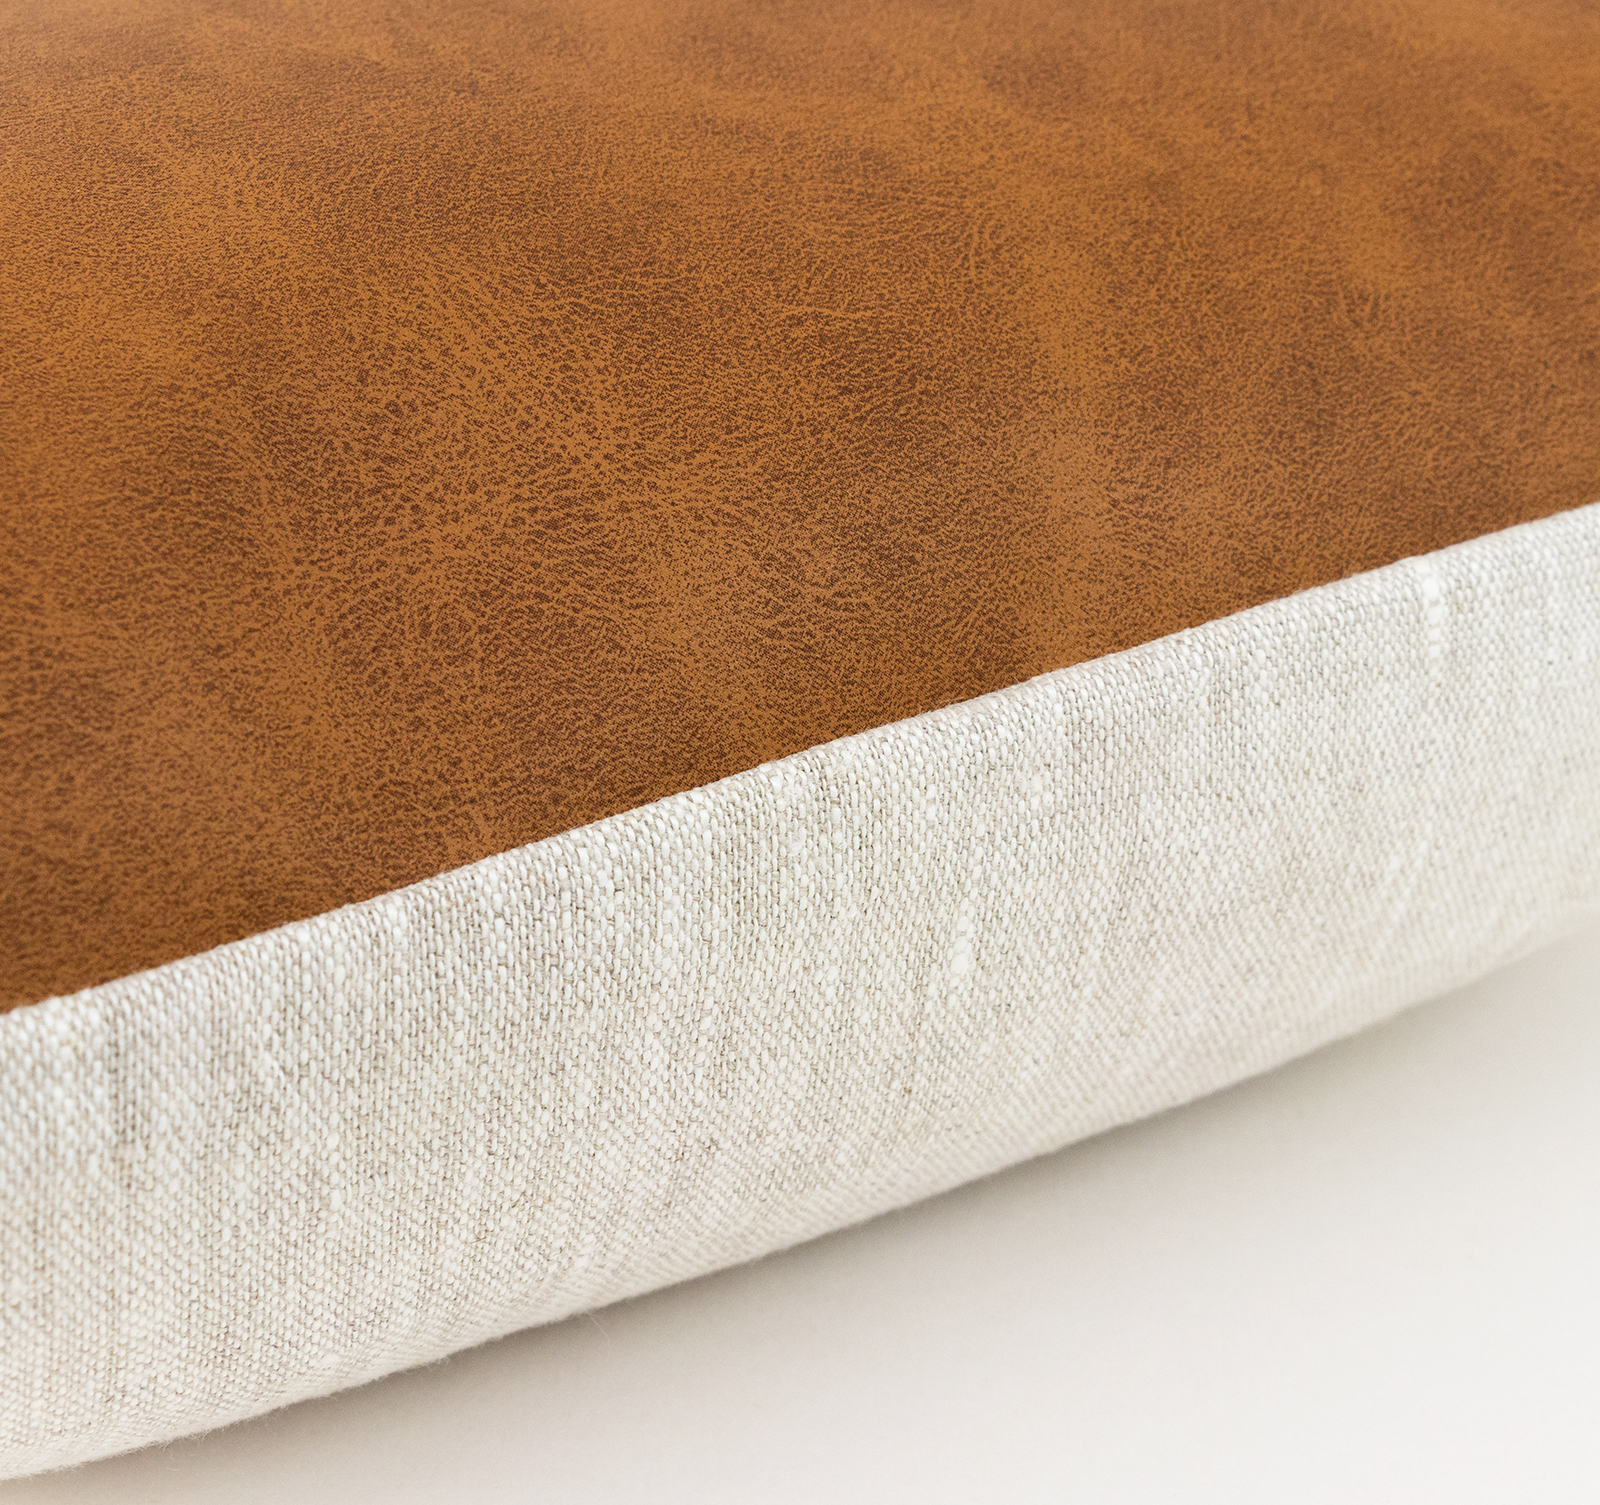 Tan Suede Pillow Brown Leather